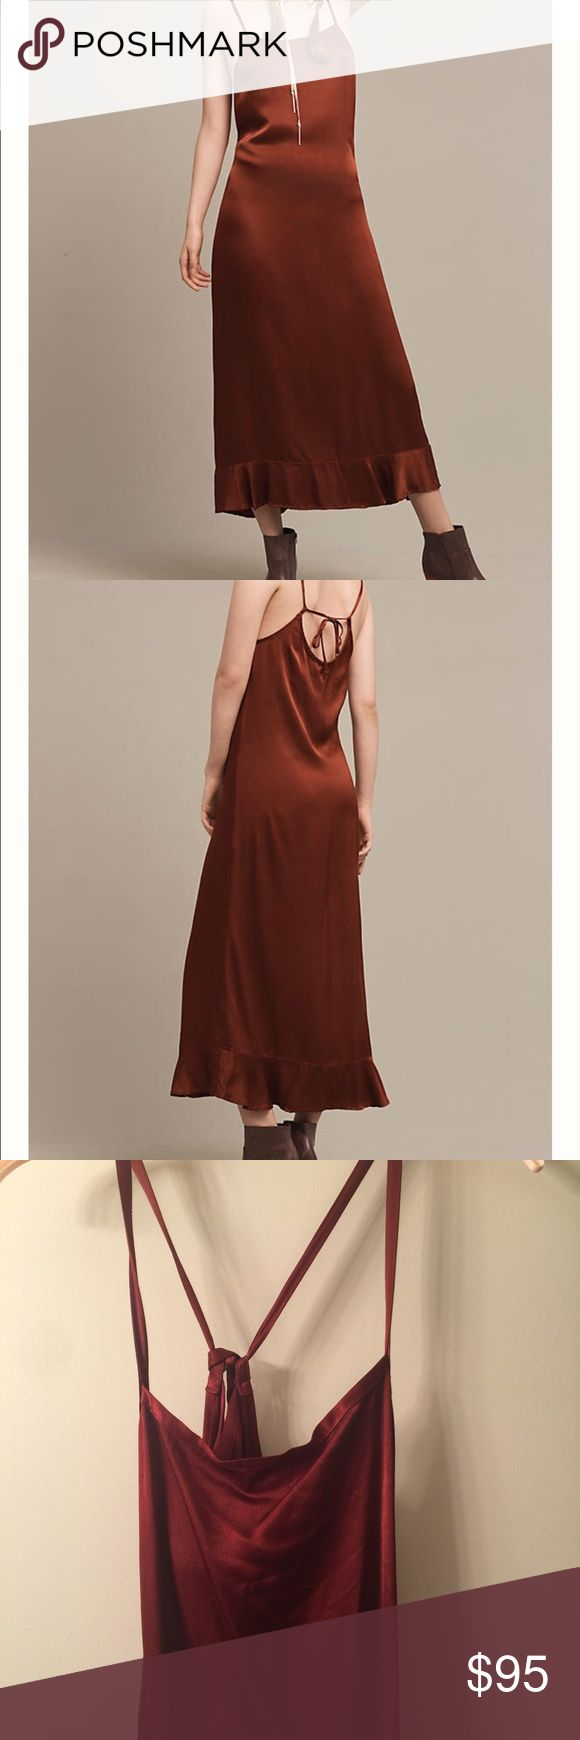 Anthropologie Arcadia midi dress by lacausa More red/maroon (as opposed to burnt orange) than the Anthropologie photo I think! See photos of actual dress for color. Worn once for a holiday party- beautiful slip dress! Size medium (fit me at size 6). Wrinkles easily- will need iron or steam. 51% viscose, 49% rayon. Anthropologie Dresses Midi